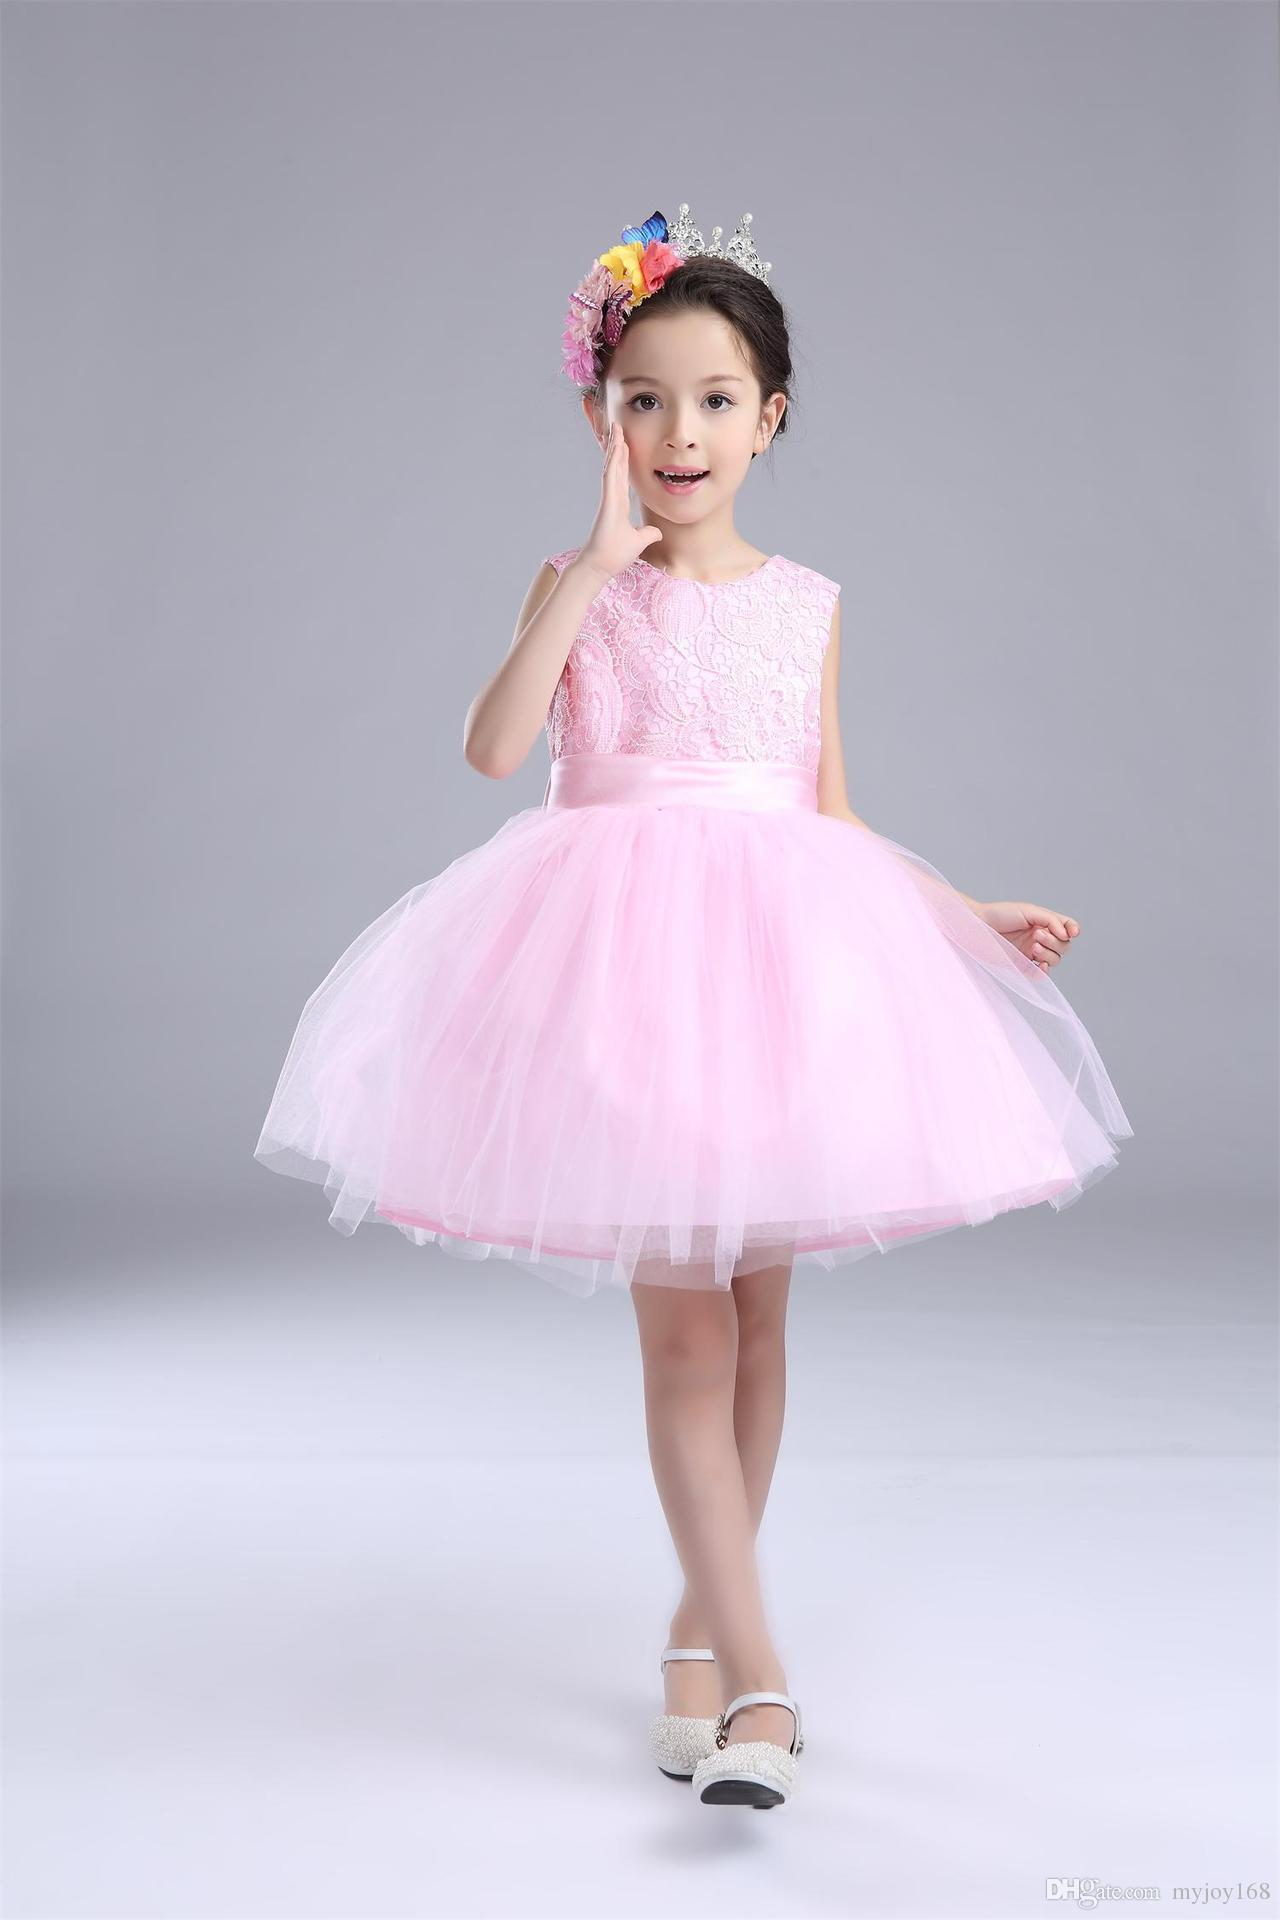 Fancy little girl dresses for a wedding ensign wedding dress ideas beautiful baby girl children dresses princess bridesmaid flower girl izmirmasajfo